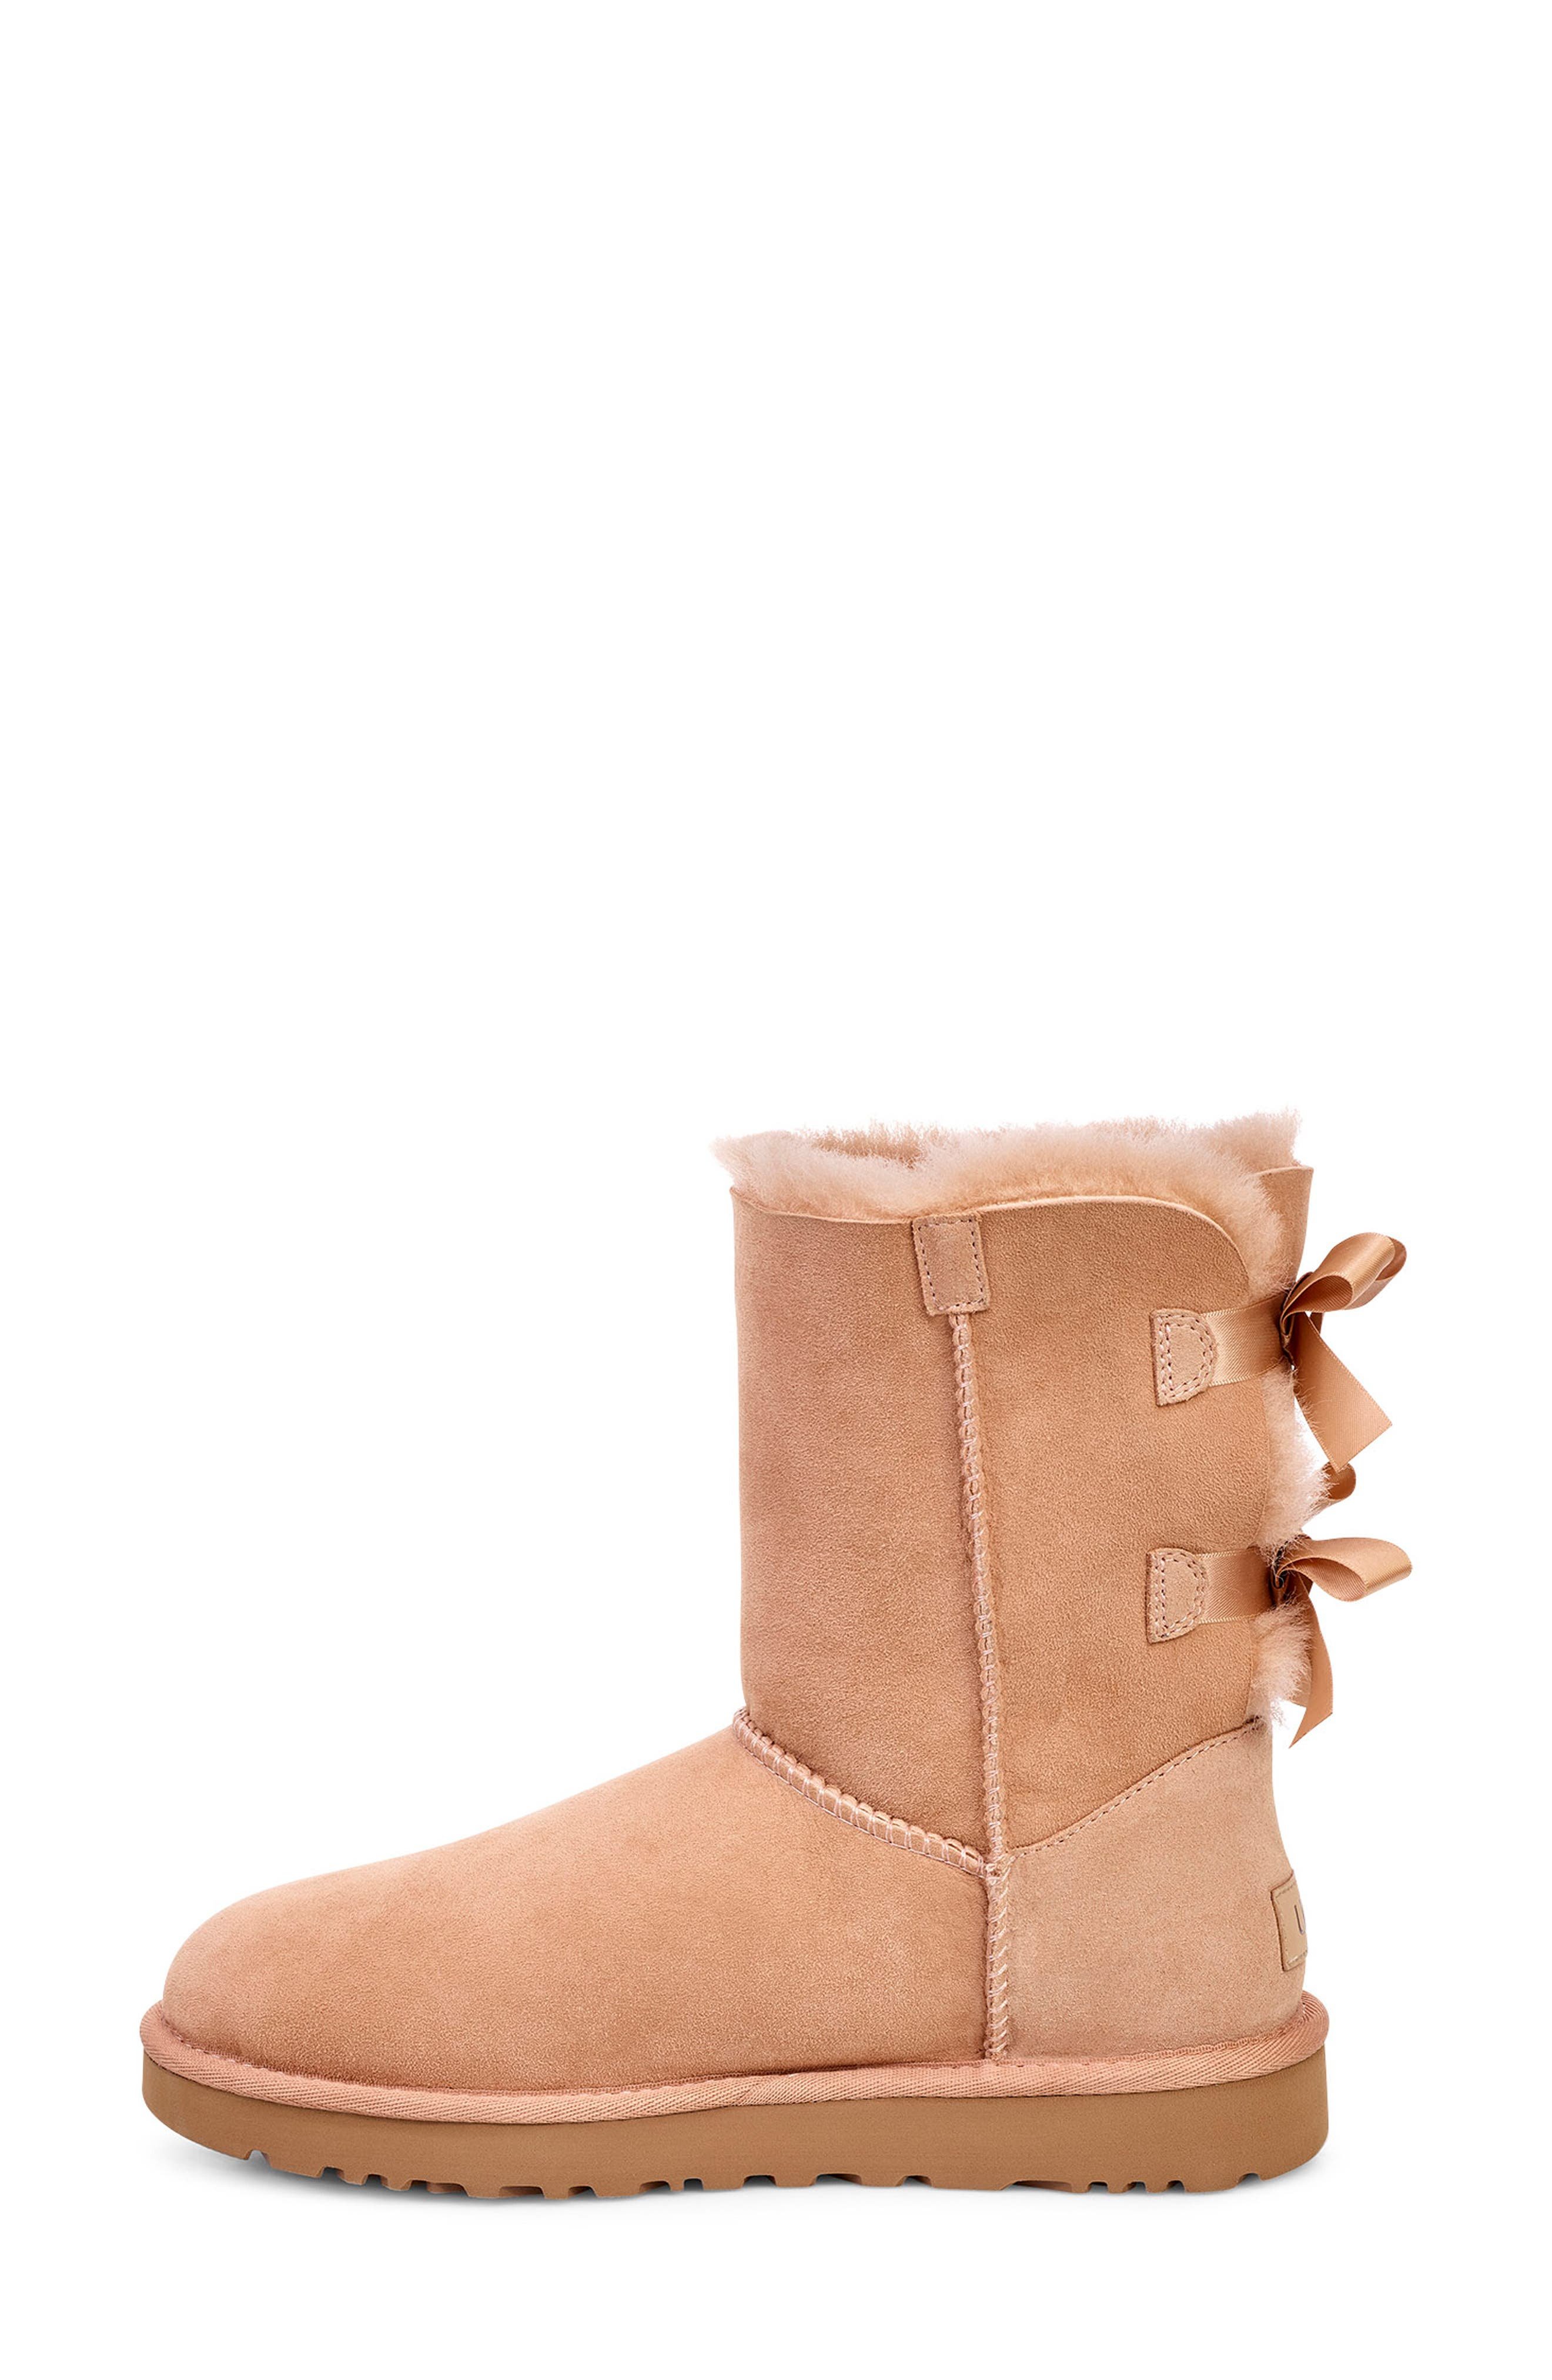 'Bailey Bow II' Boot,                             Alternate thumbnail 6, color,                             ARROYO SUEDE